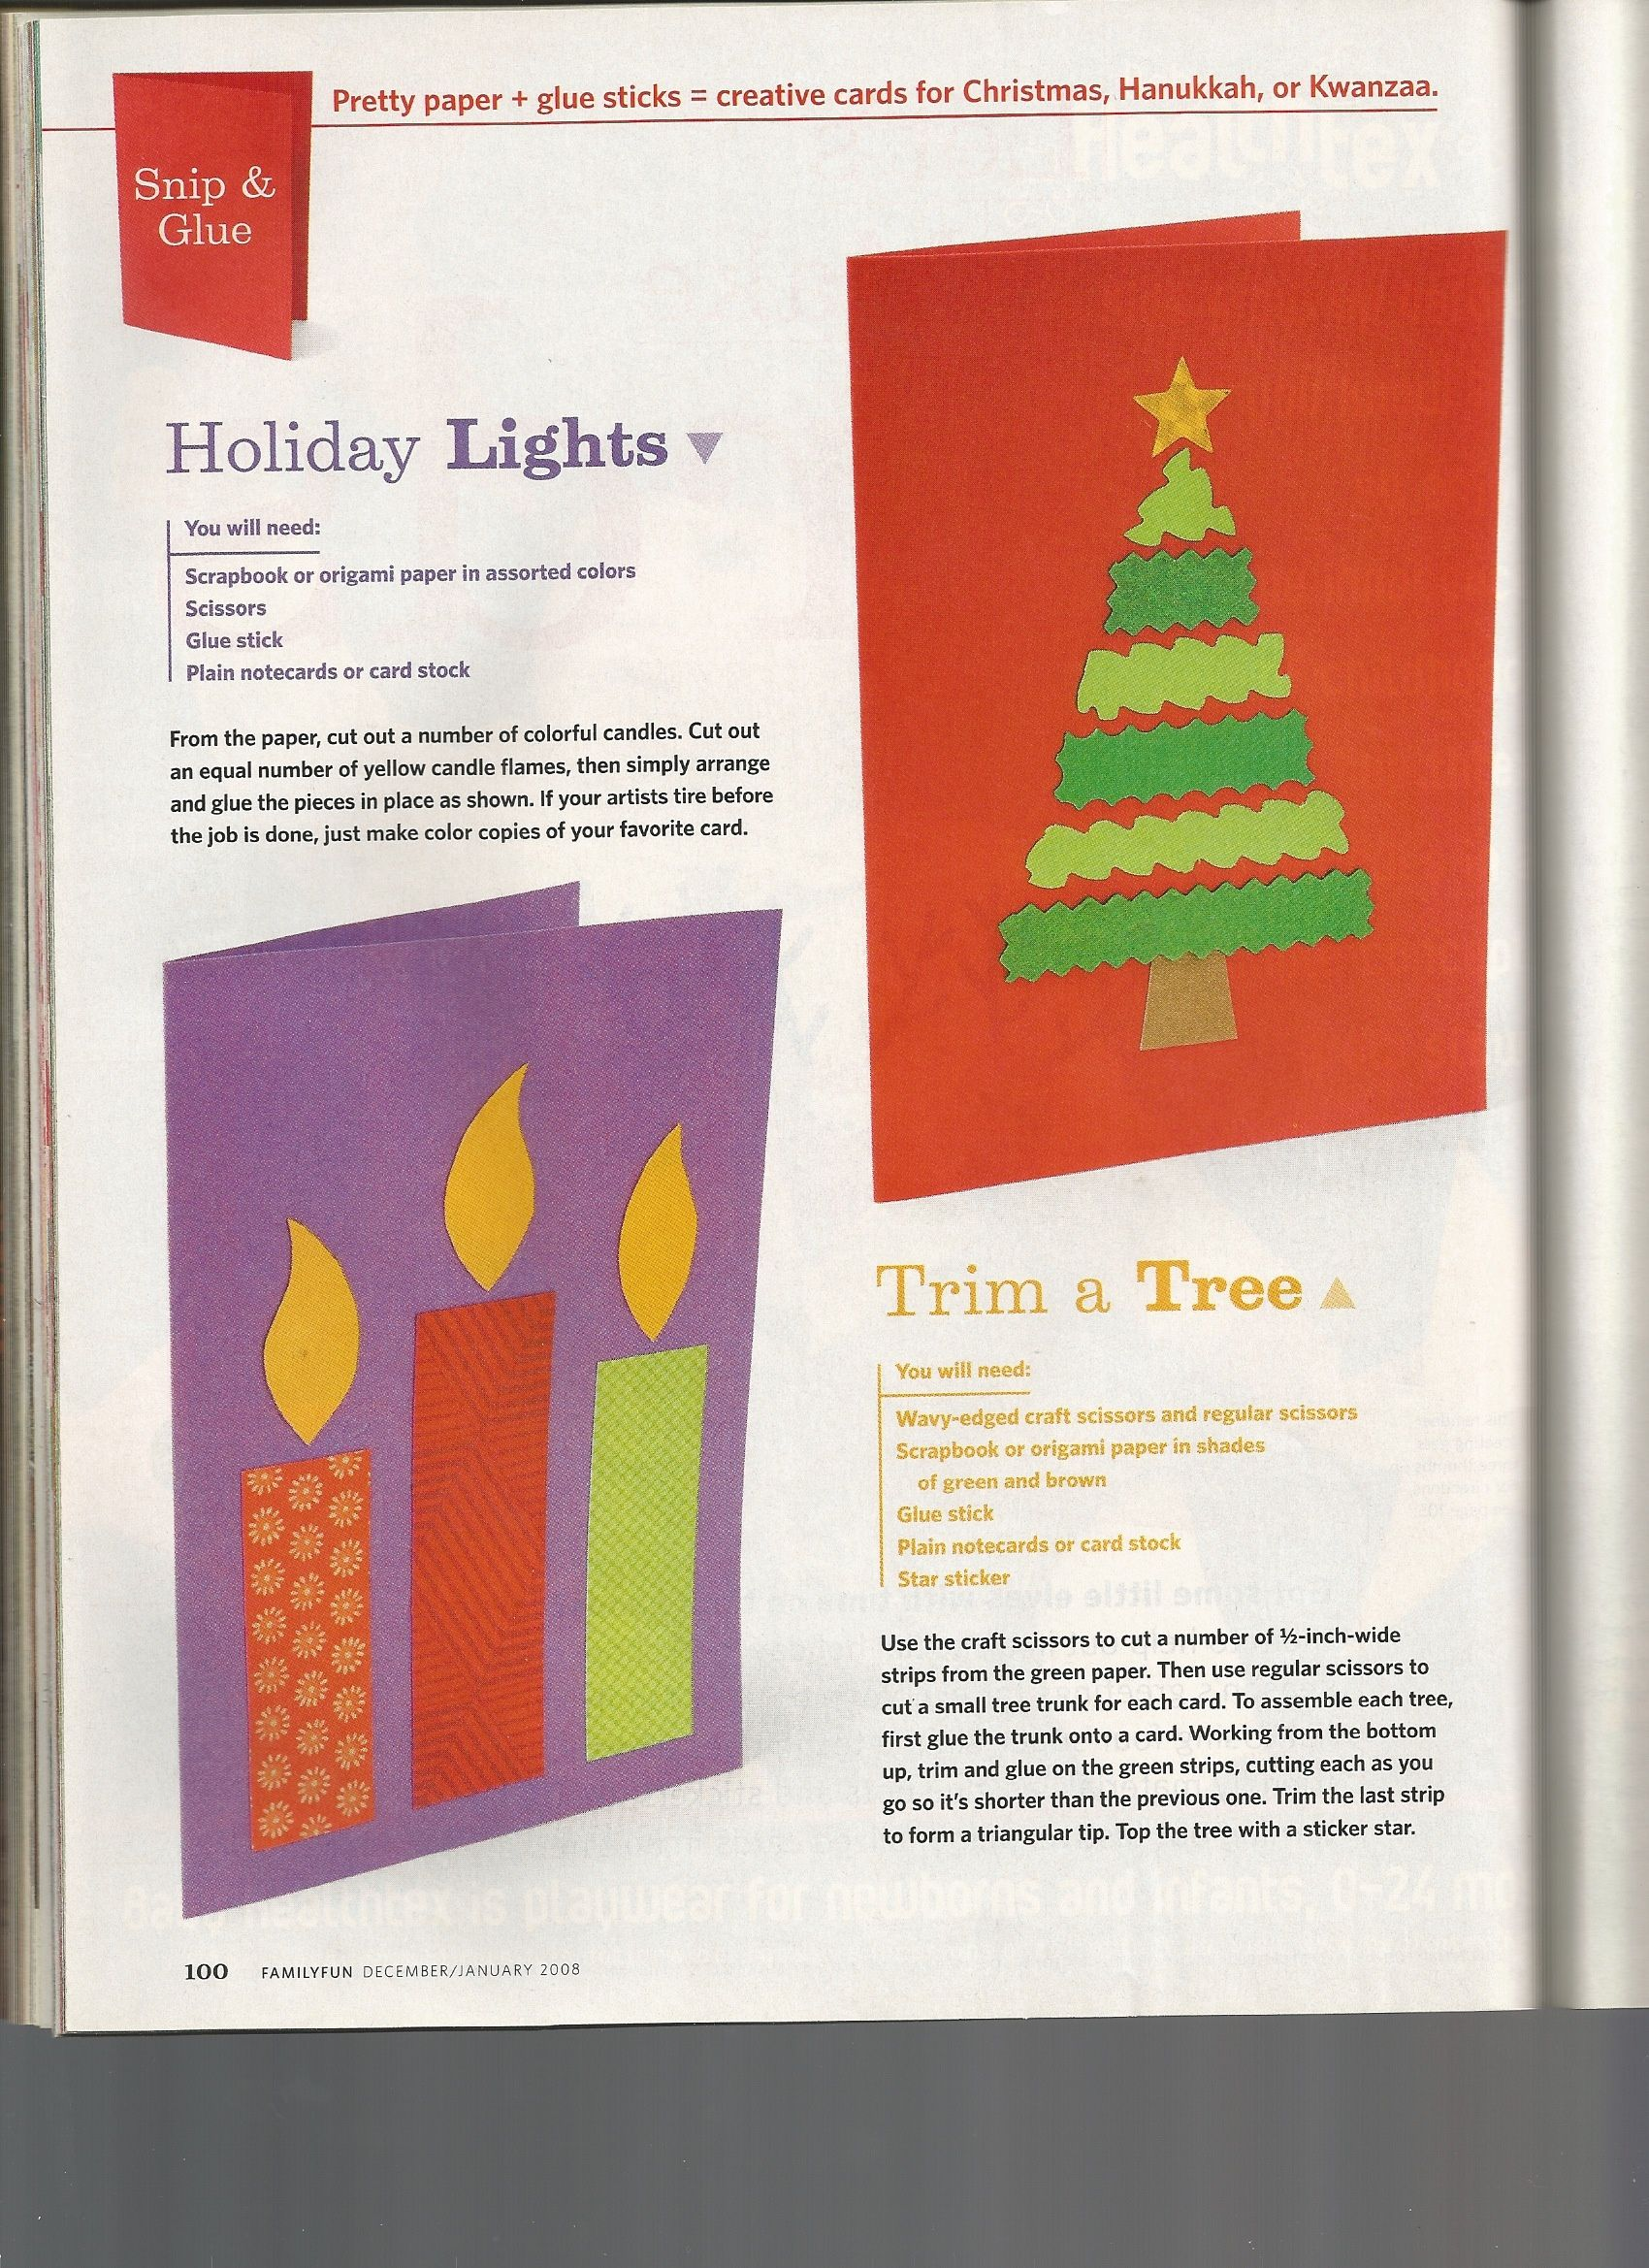 Christmas Cards Ideas 1 From Family Fun Magazine December